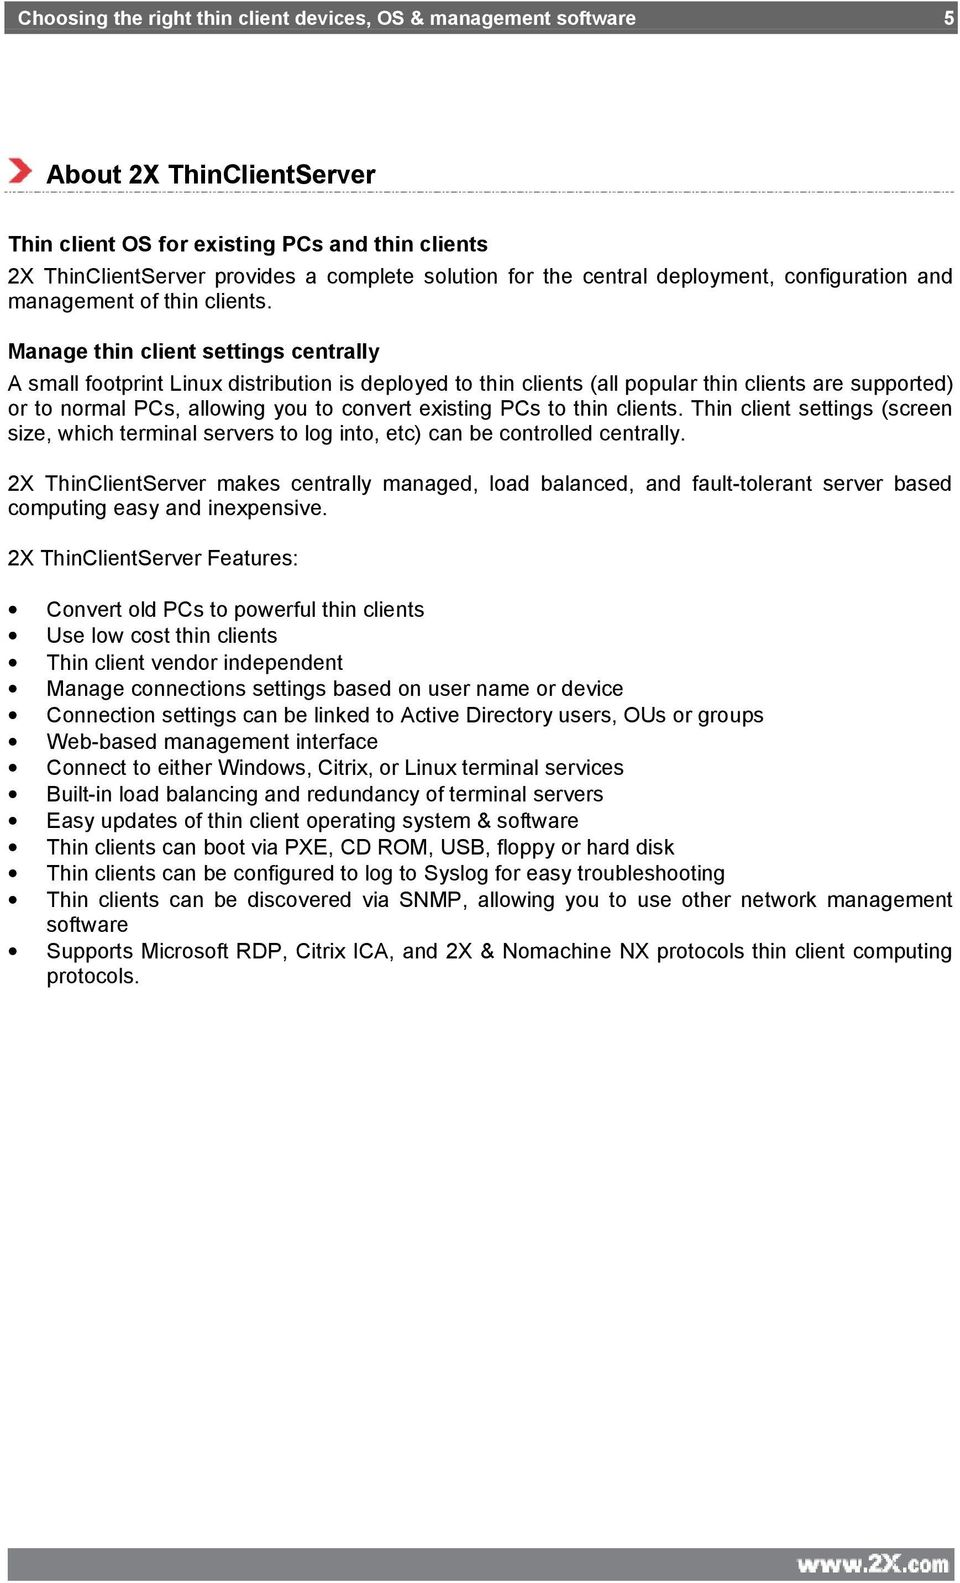 Choosing the right thin client devices, OS & management software - PDF